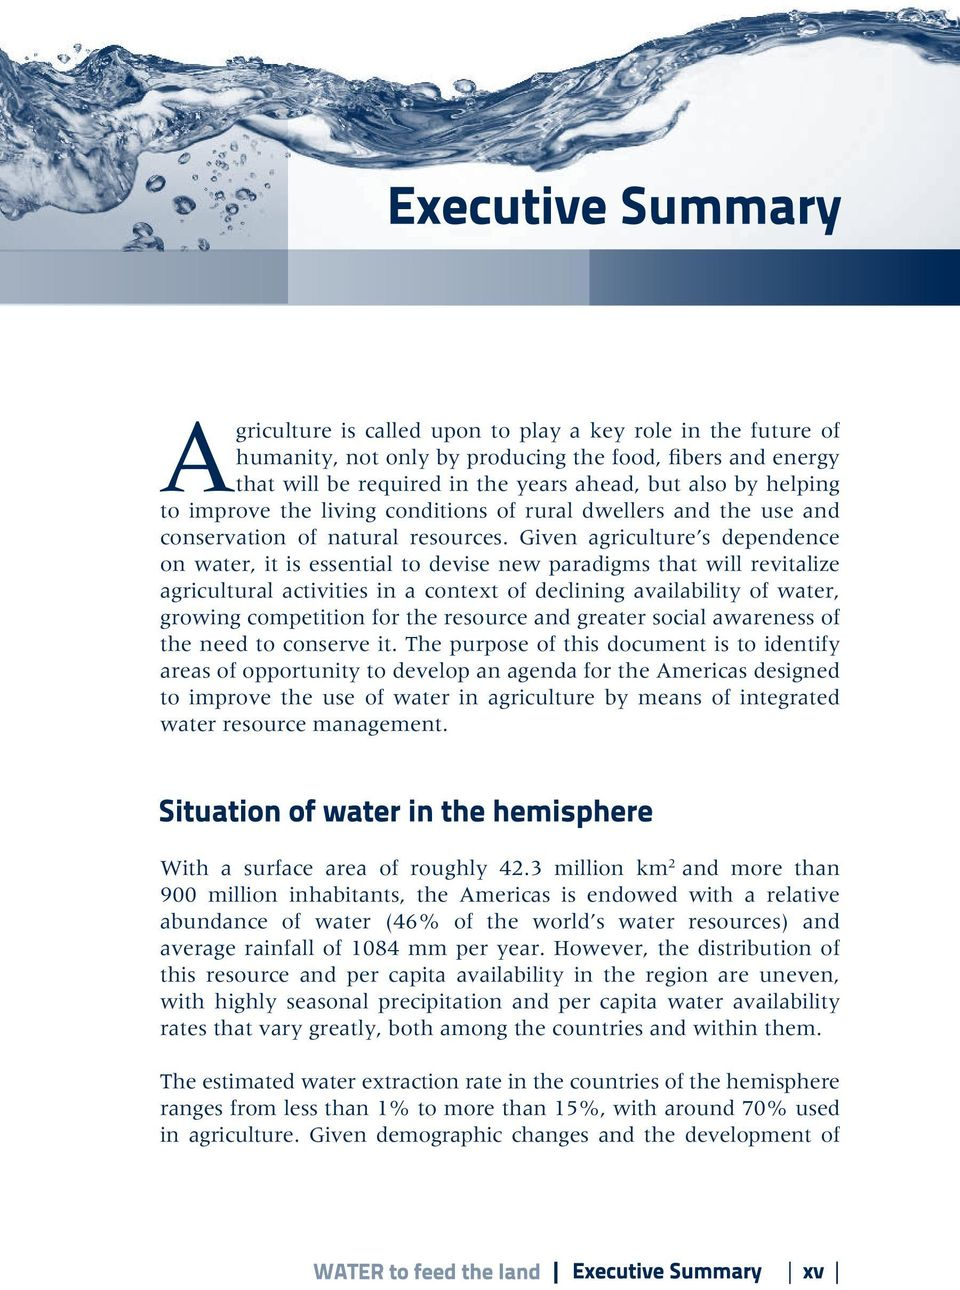 Given agriculture s dependence on water, it is essential to devise new paradigms that will revitalize agricultural activities in a context of declining availability of water, growing competition for